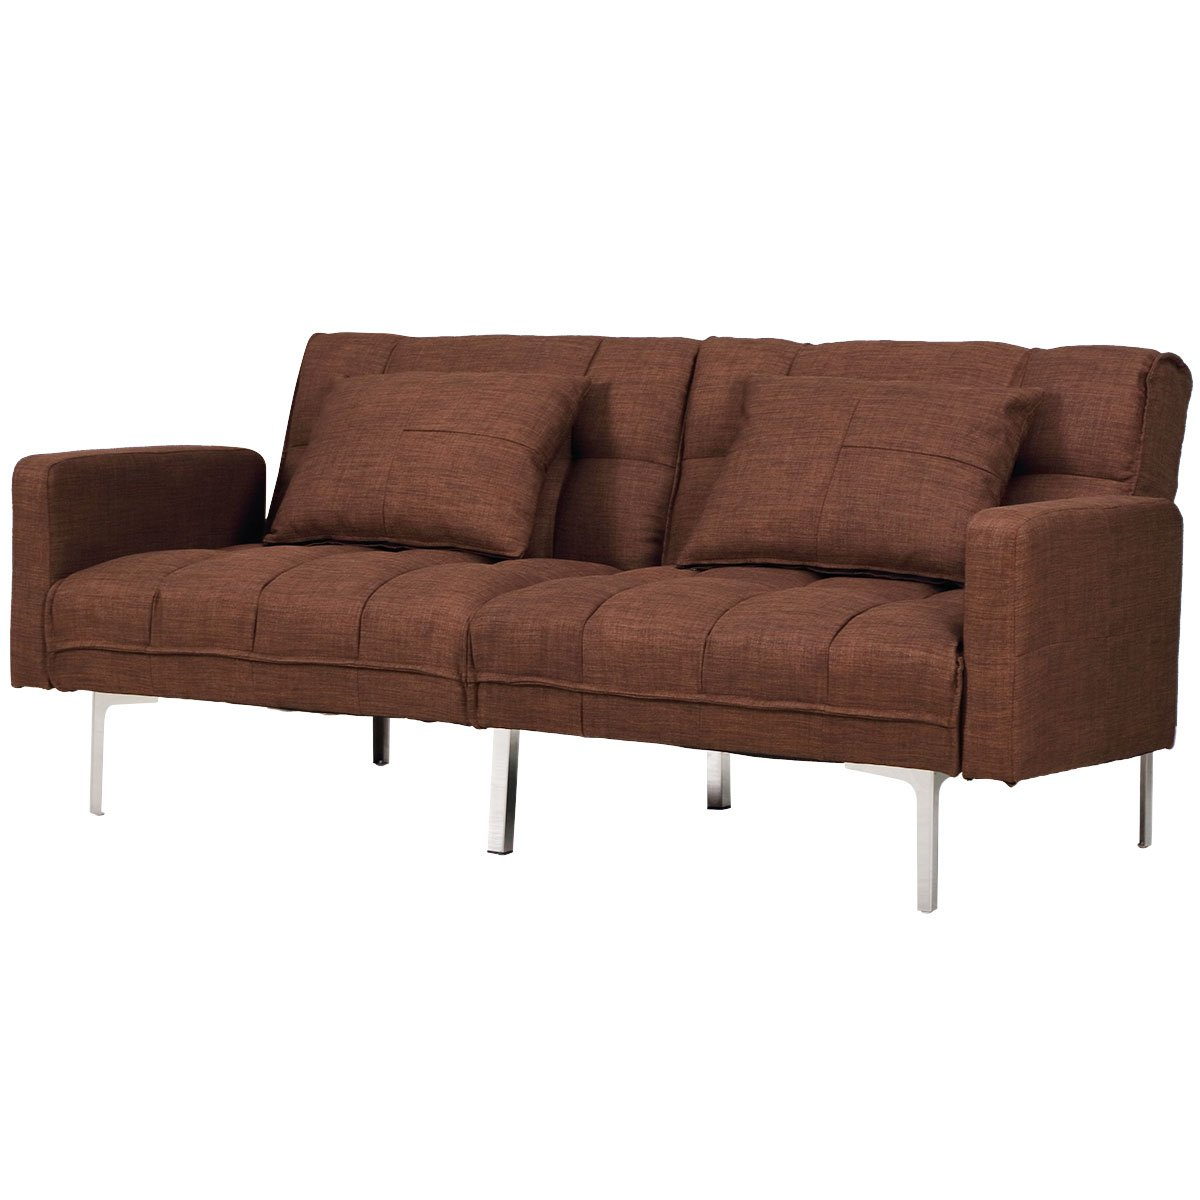 Giantex futon bed couch sofa modern reclining back double seats linen upholstery living room furniture loveseat sleeper recliner convertiable sofa bed